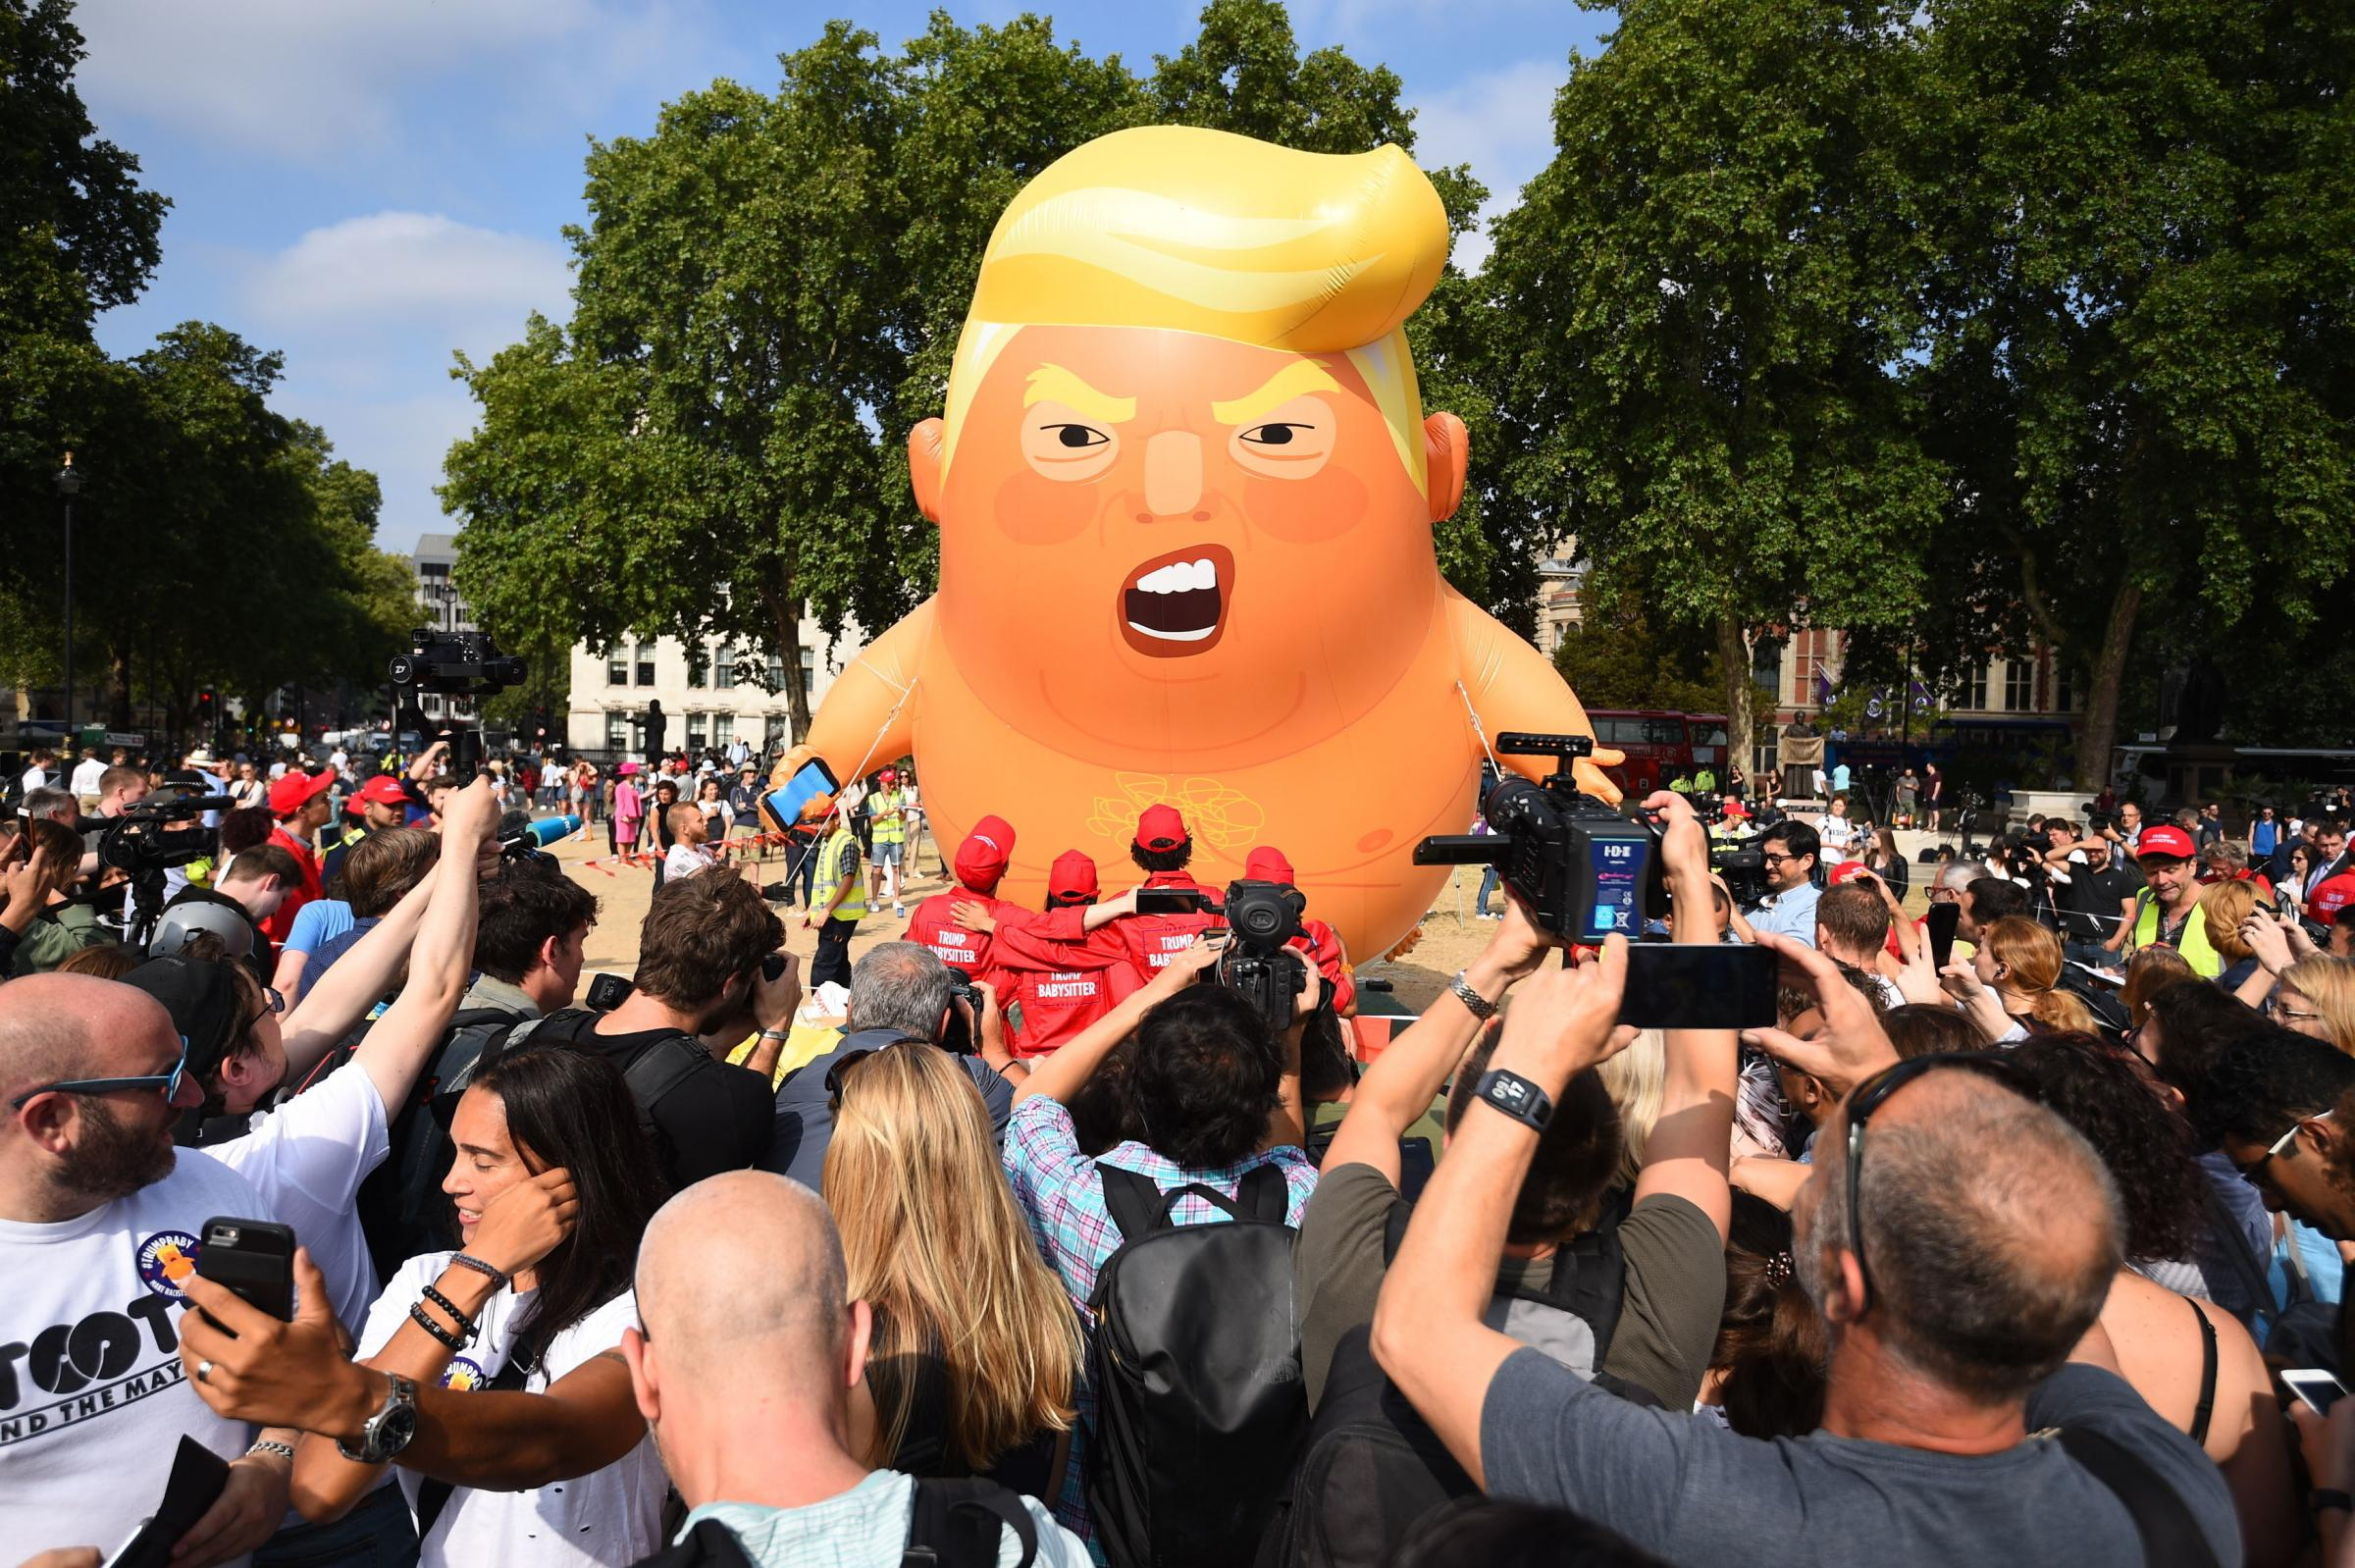 The Trump 'baby' balloon in London's Parliament Square in July 2018. PICTURE: Kirsty O'Connor/PA Wire.